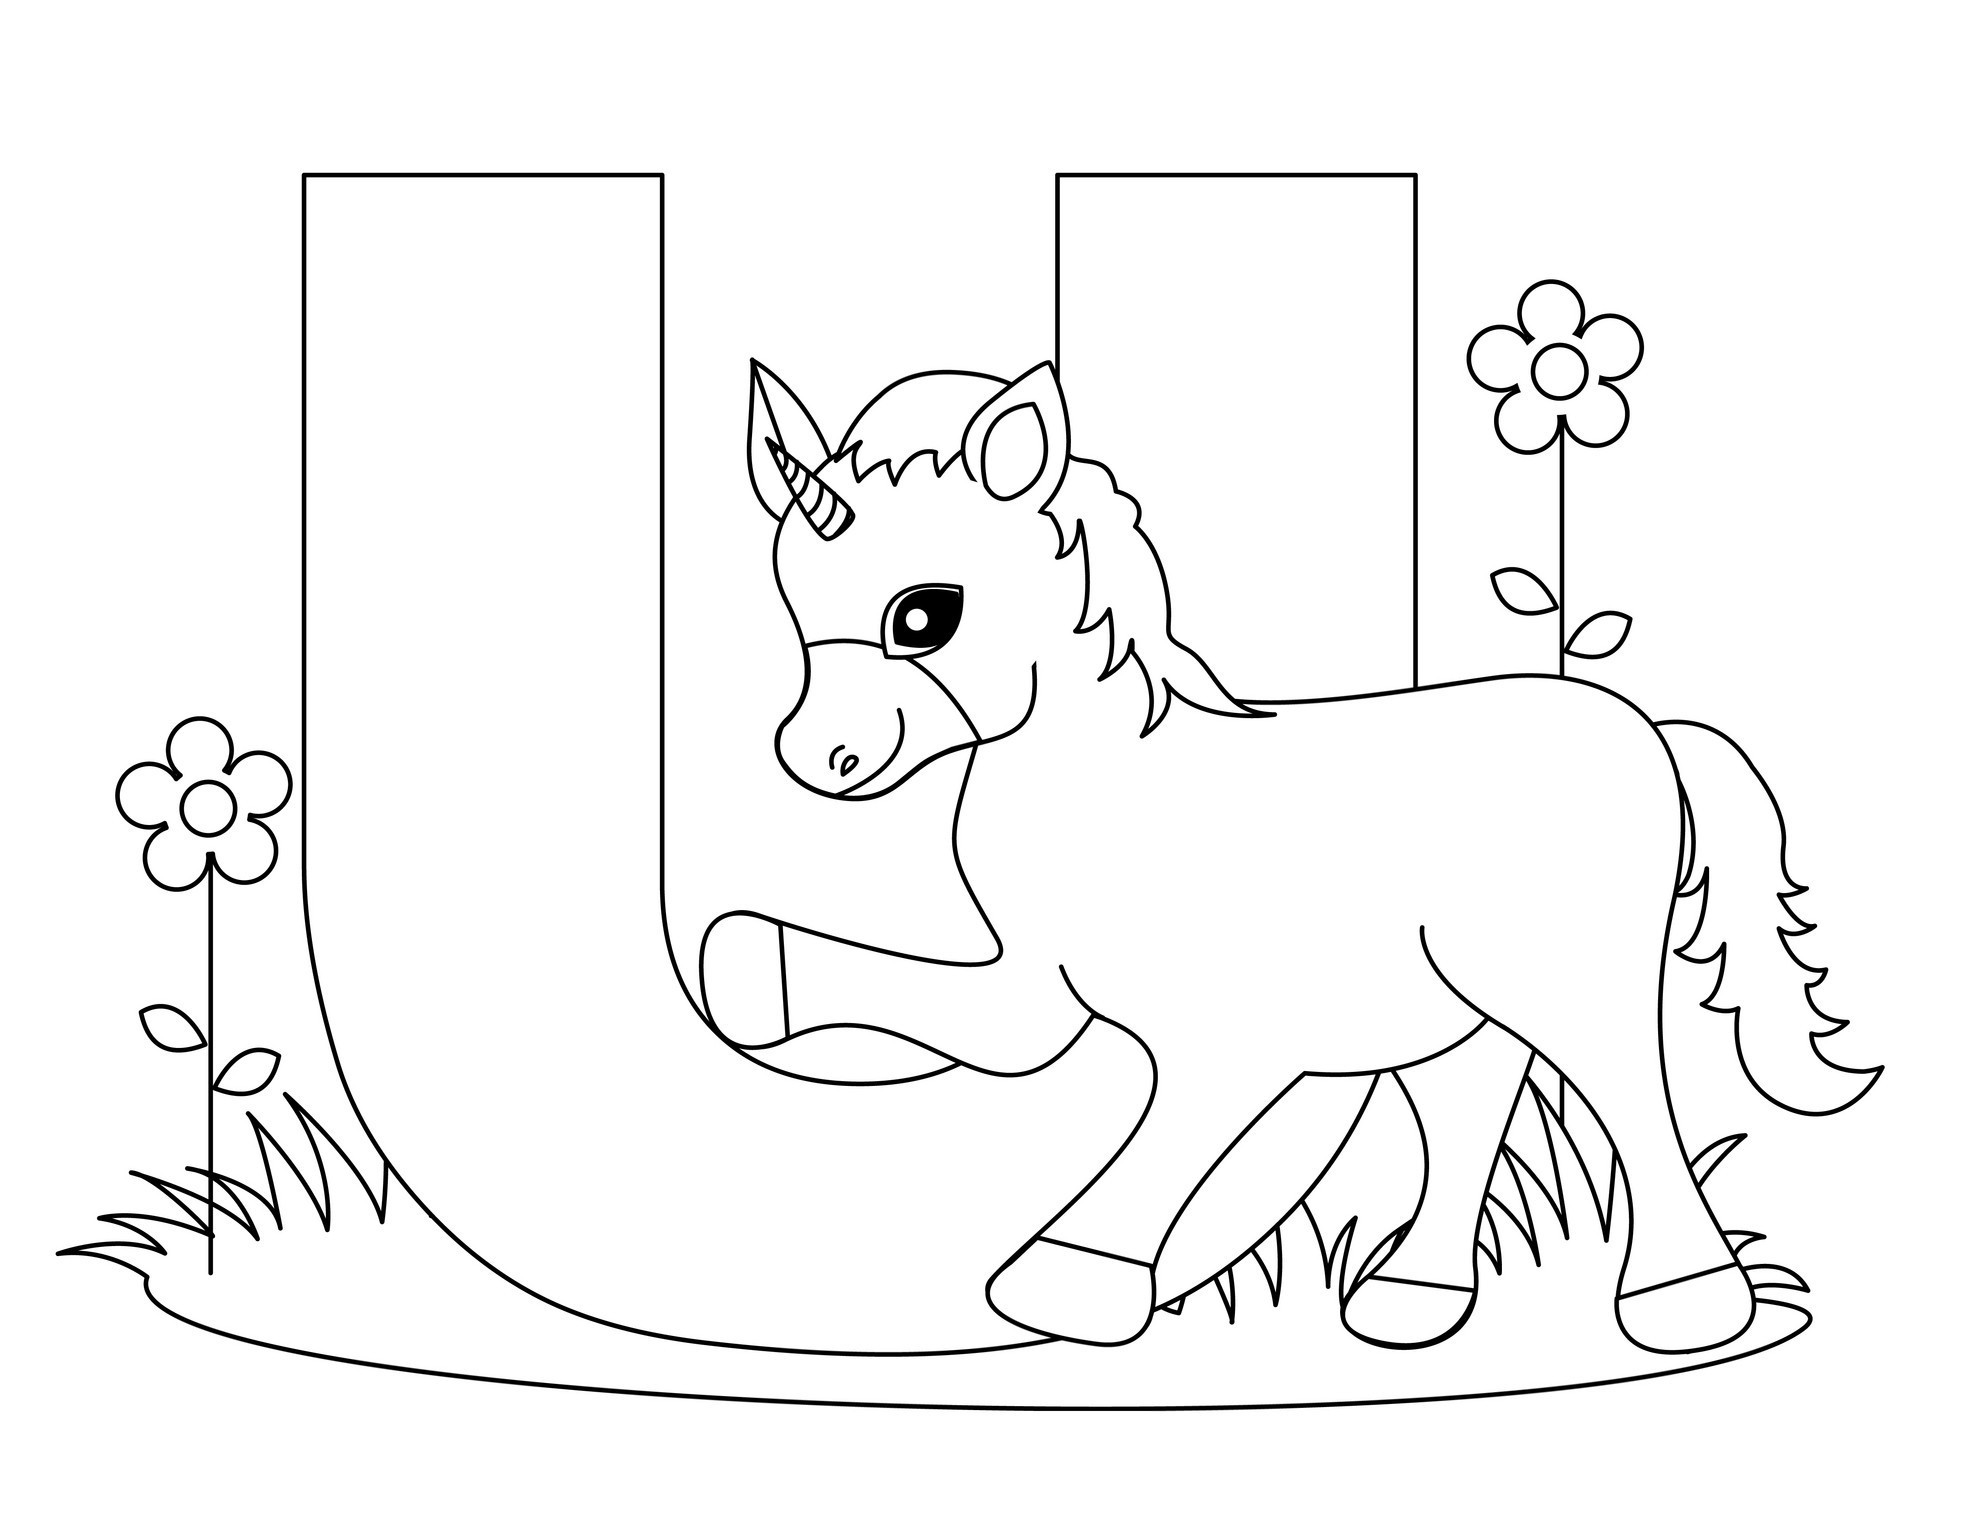 Letter M And V Togueter Coloring Pages For Girls Printable  Free Printable Alphabet Coloring Pages for Kids Best